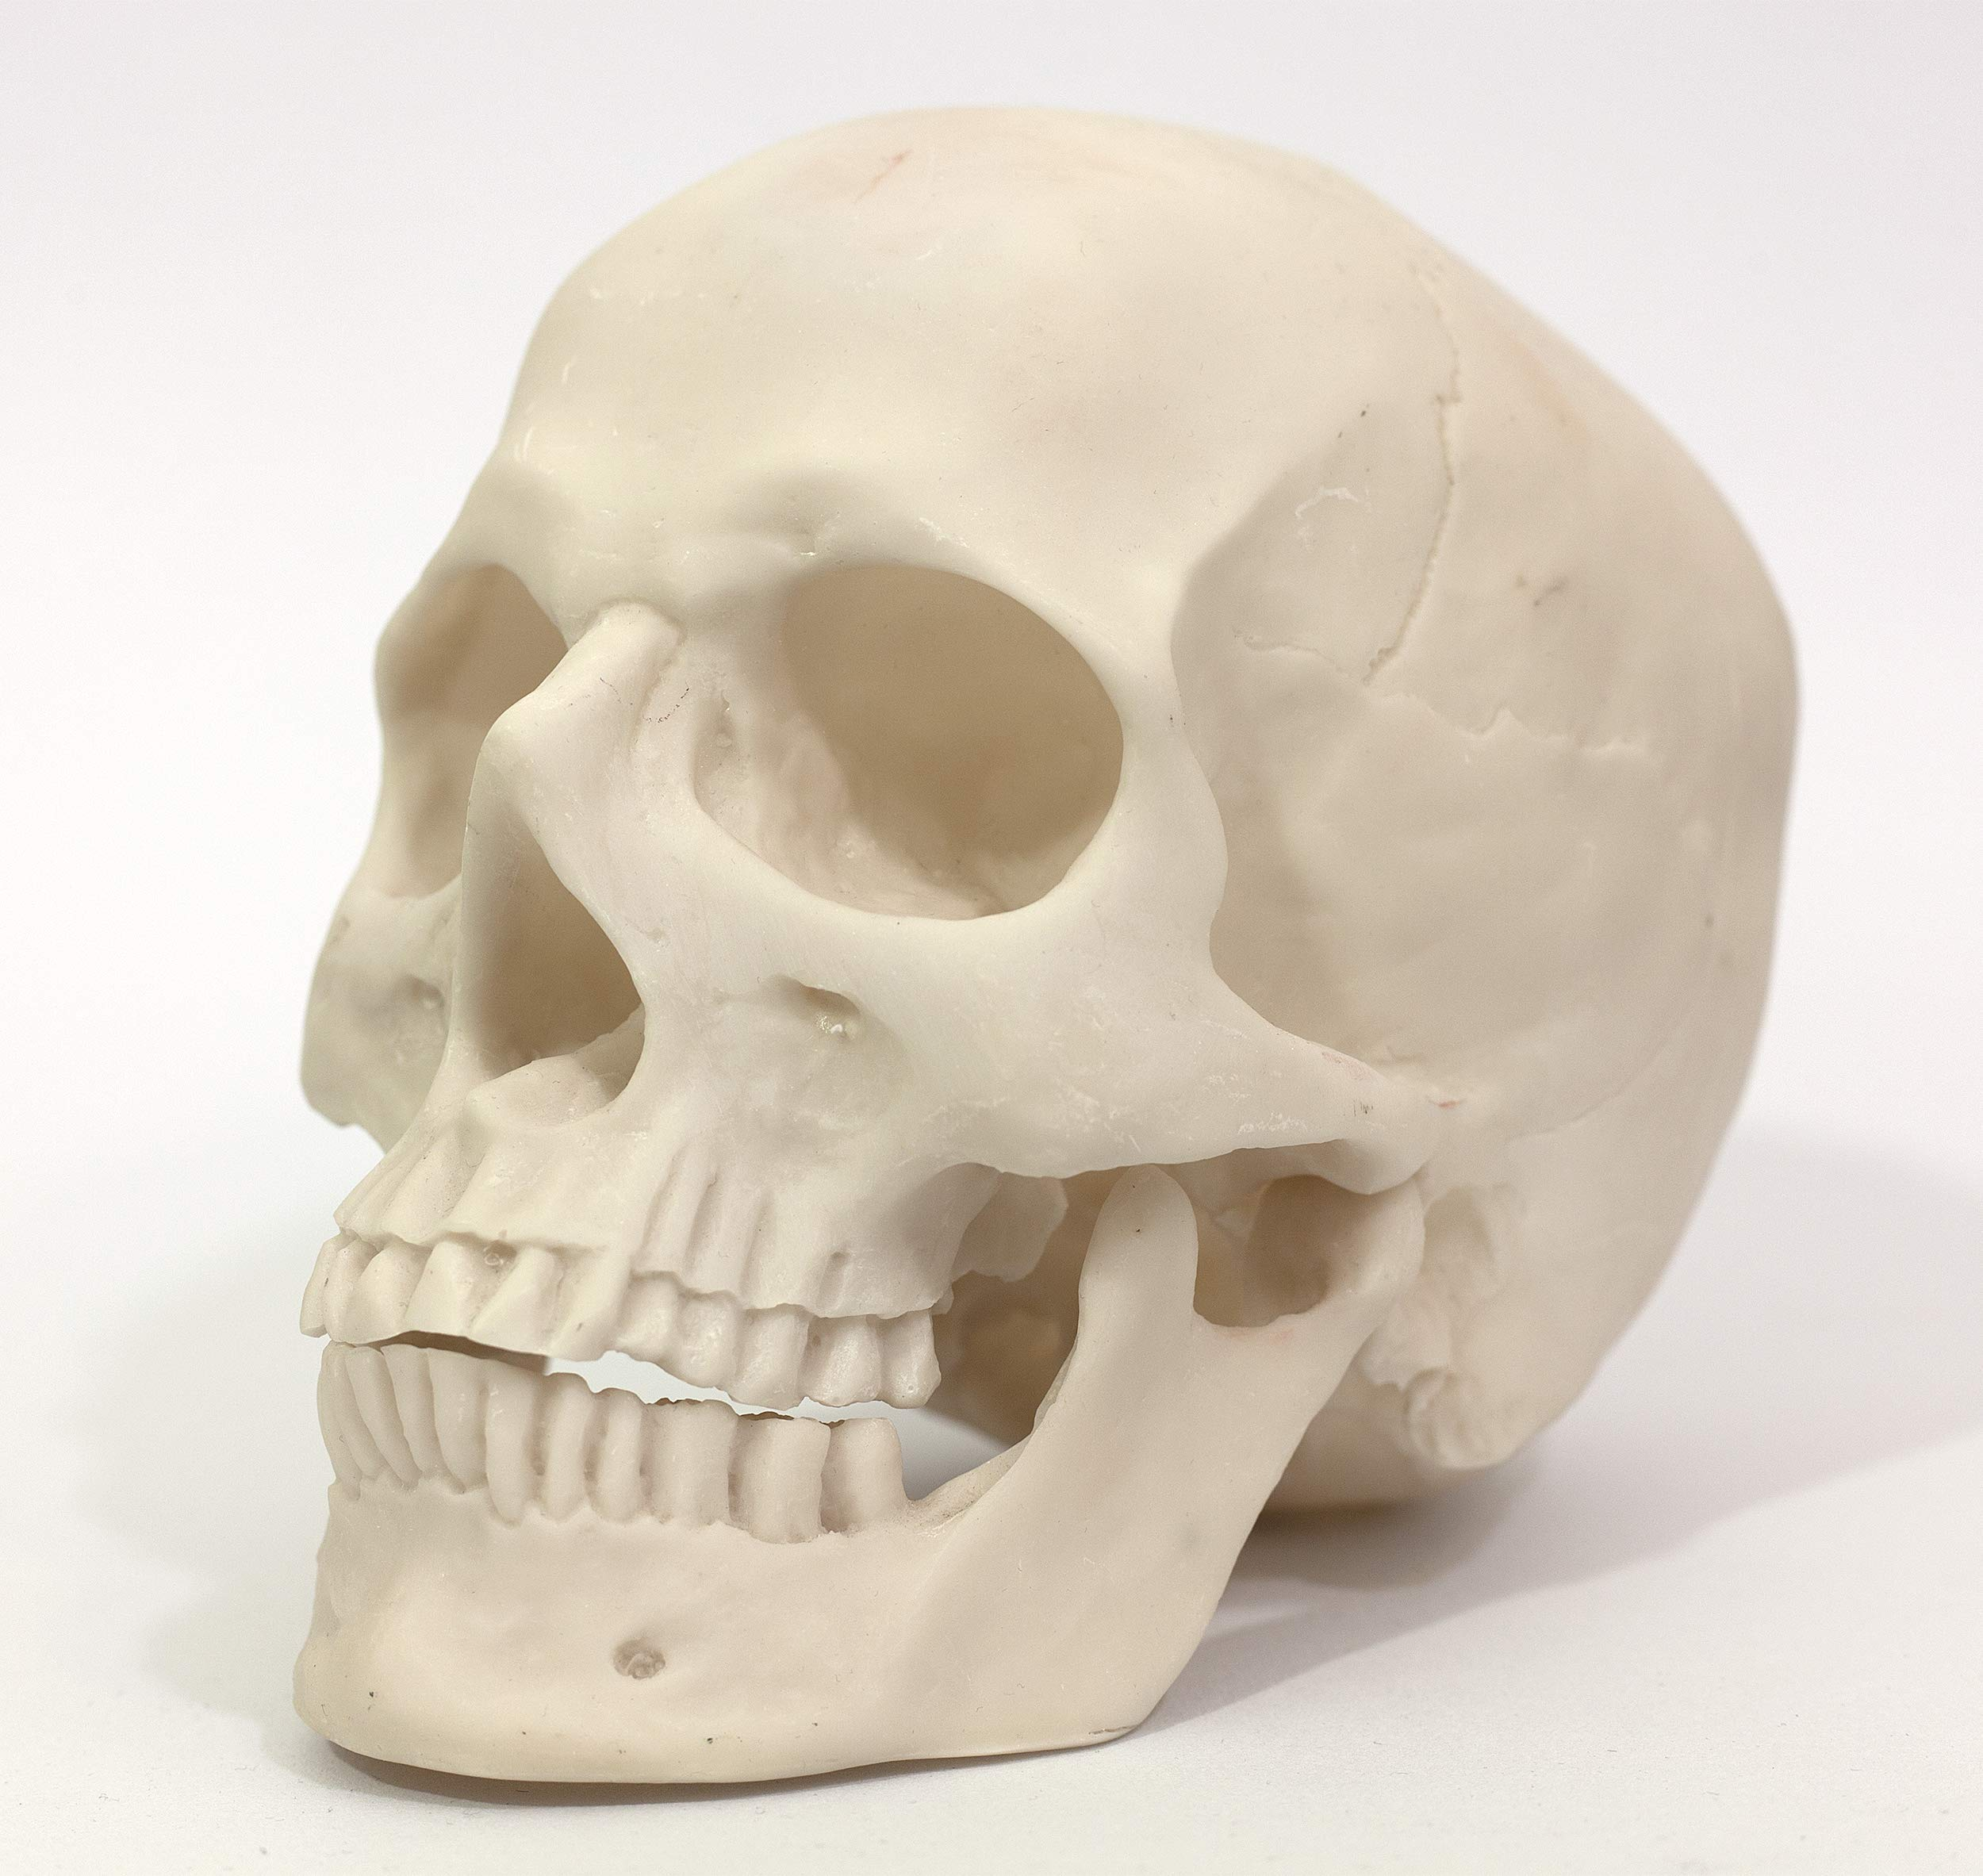 ADAGIARE Artist Anatomy Reference Skull and Head Model for Life Drawing and Painting by Adagiare